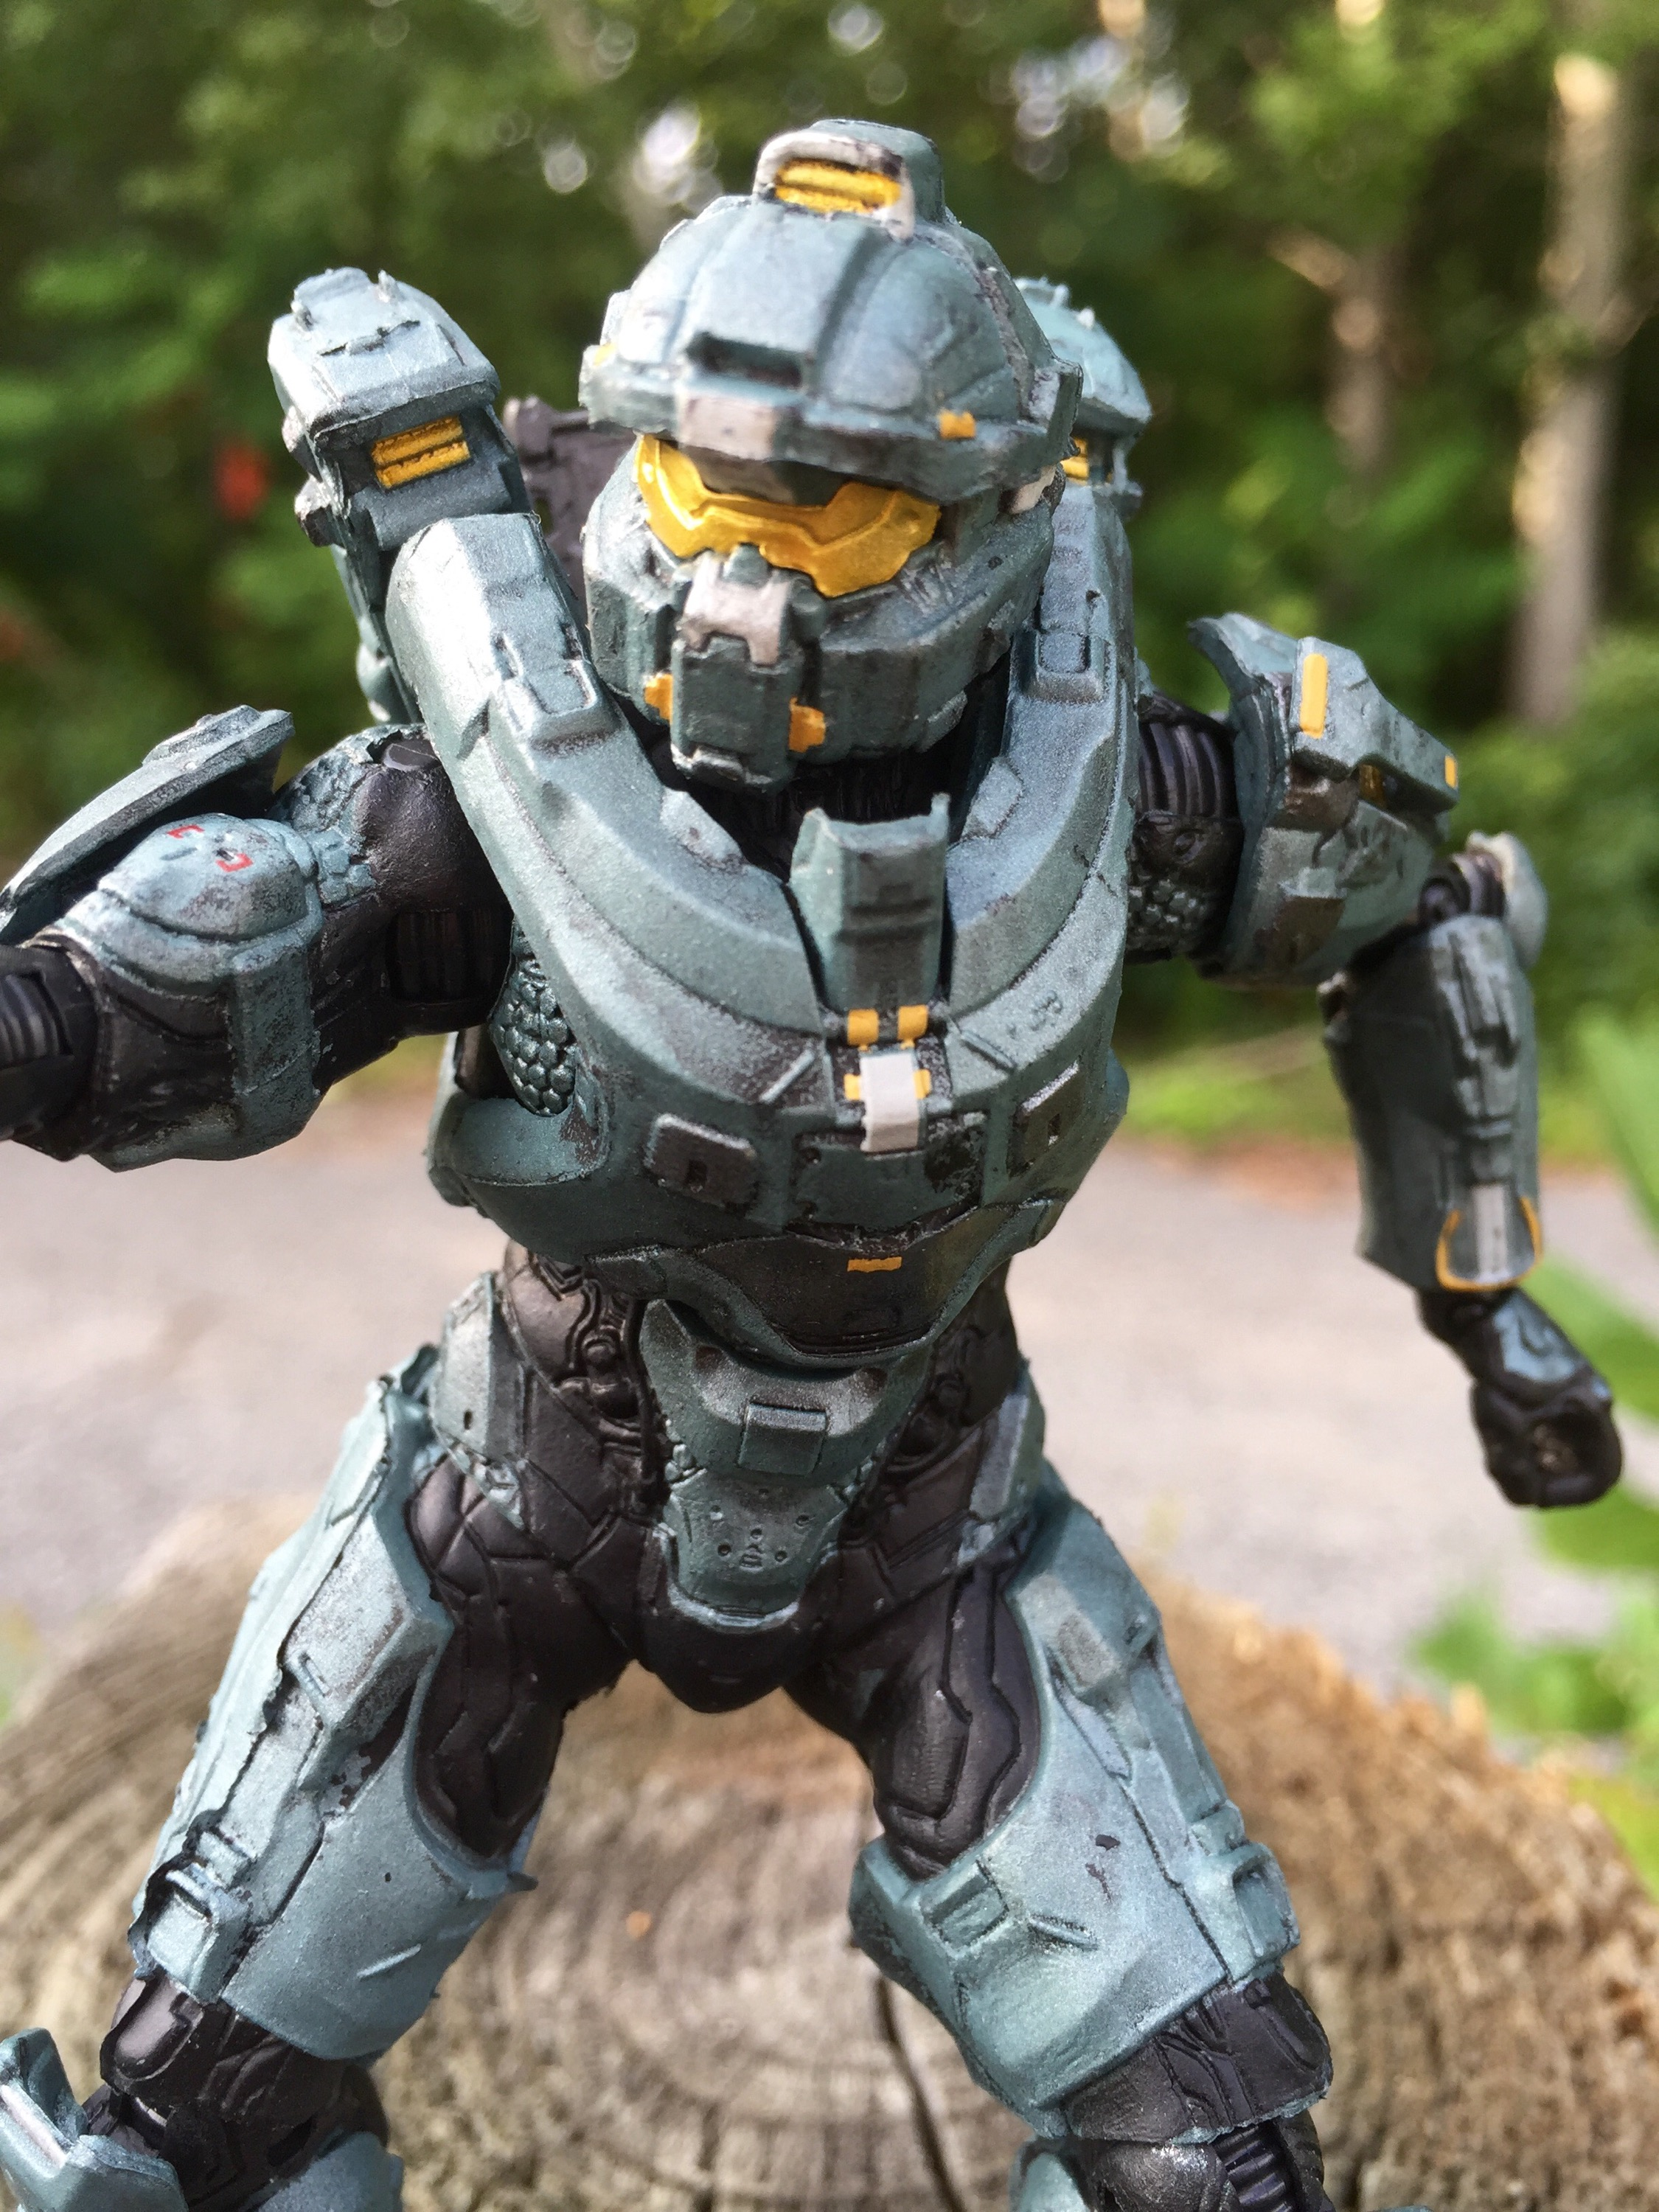 Mcfarlane Toys Halo 5 Guardians Fred Figure Review Halo Toy News